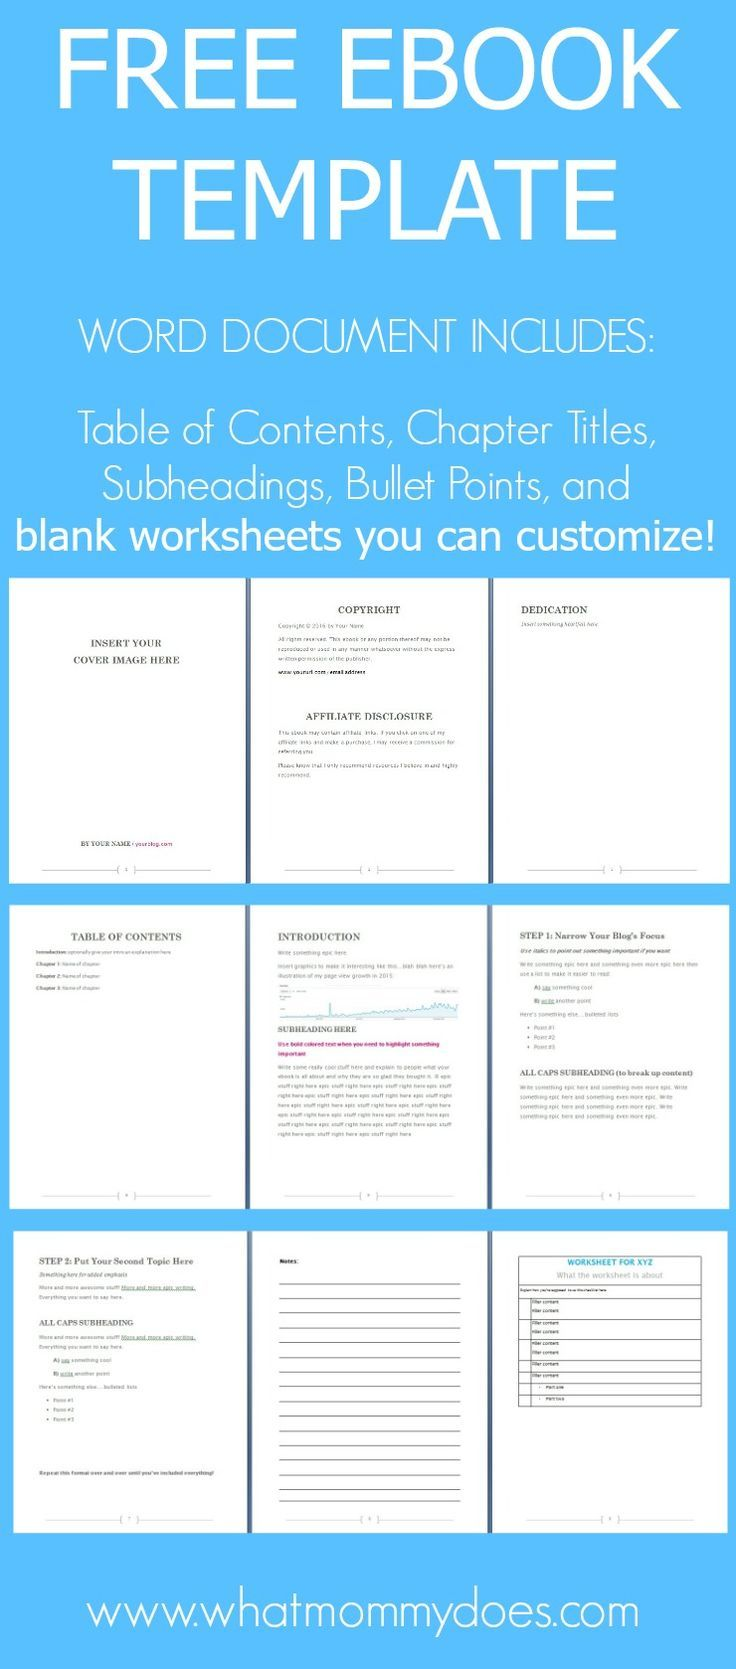 Free ebook template preformatted word document template free free ebook template preformatted word document maxwellsz